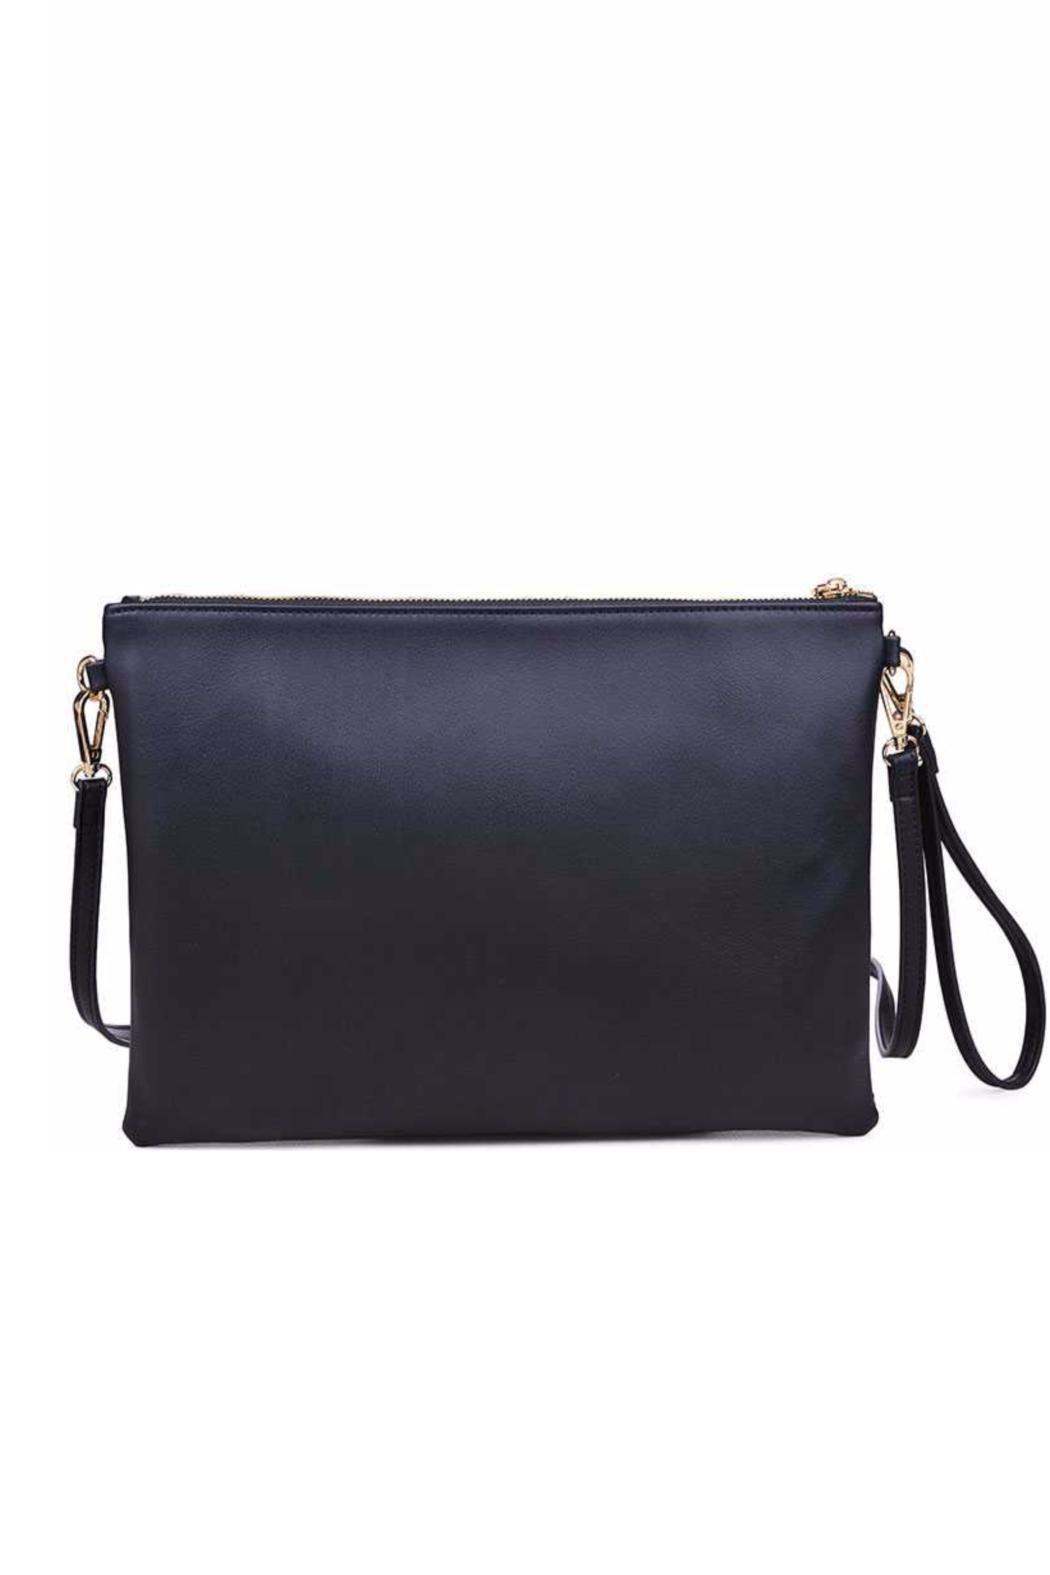 Urban Expressions Pappillon Crossbody Clutch - Front Full Image